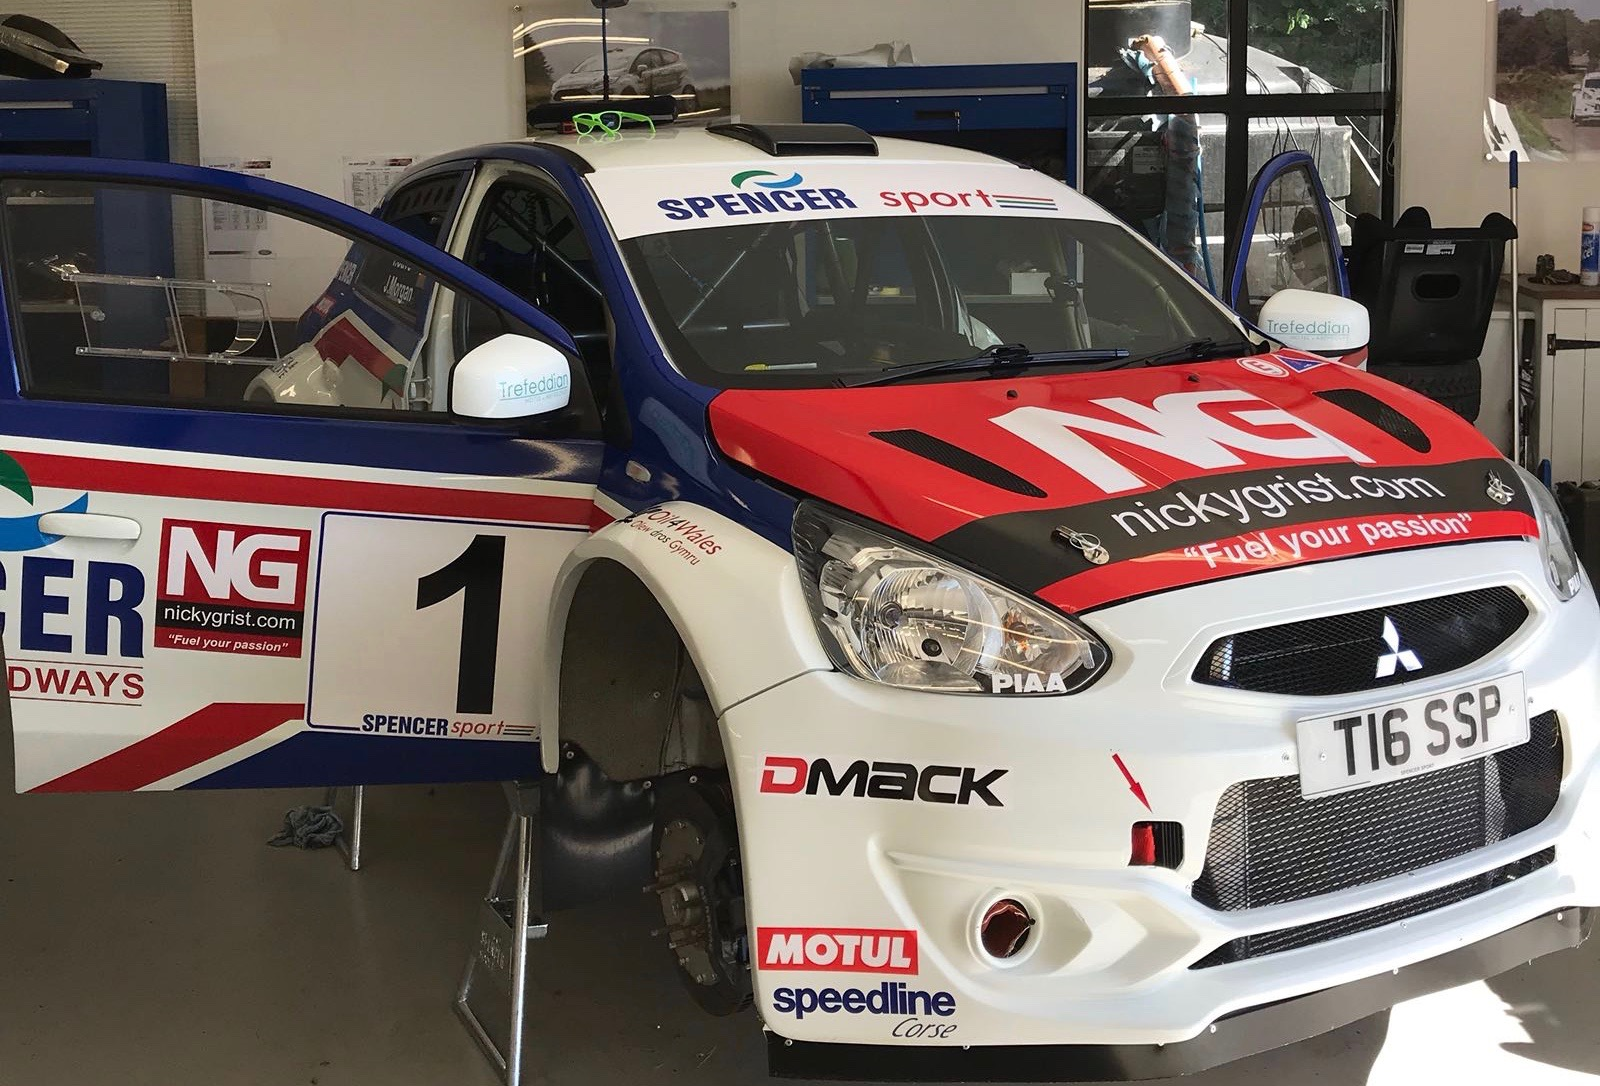 Tom Cave to drive Spencer Sport Mirage on Nicky Grist Stages